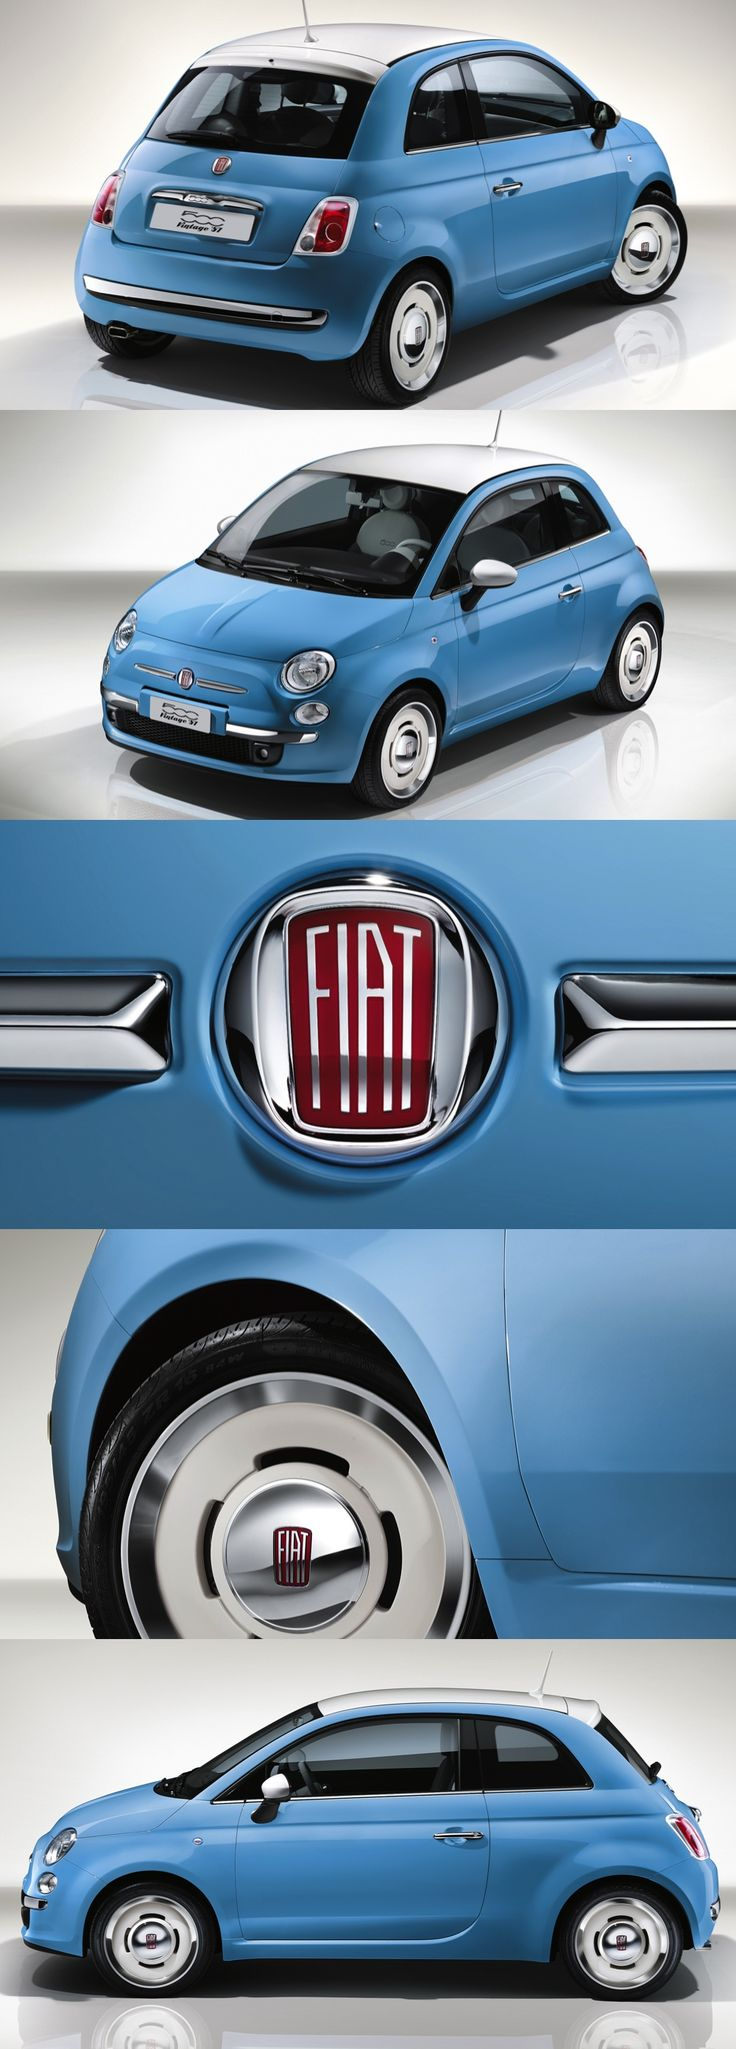 Fiat 500 Vintage'57 Even More Retro  New FIAT 500 VINTAGE '57 a celebration of the original 1957 car.  Set to debut at the 2015 Geneva Motor Show (March 3). The VINTAGE '57 is a contemporary interpretation of the design cues that gave the original Fiat 500 its distinctive identity. #fiat500 #Fiat #retro #fun